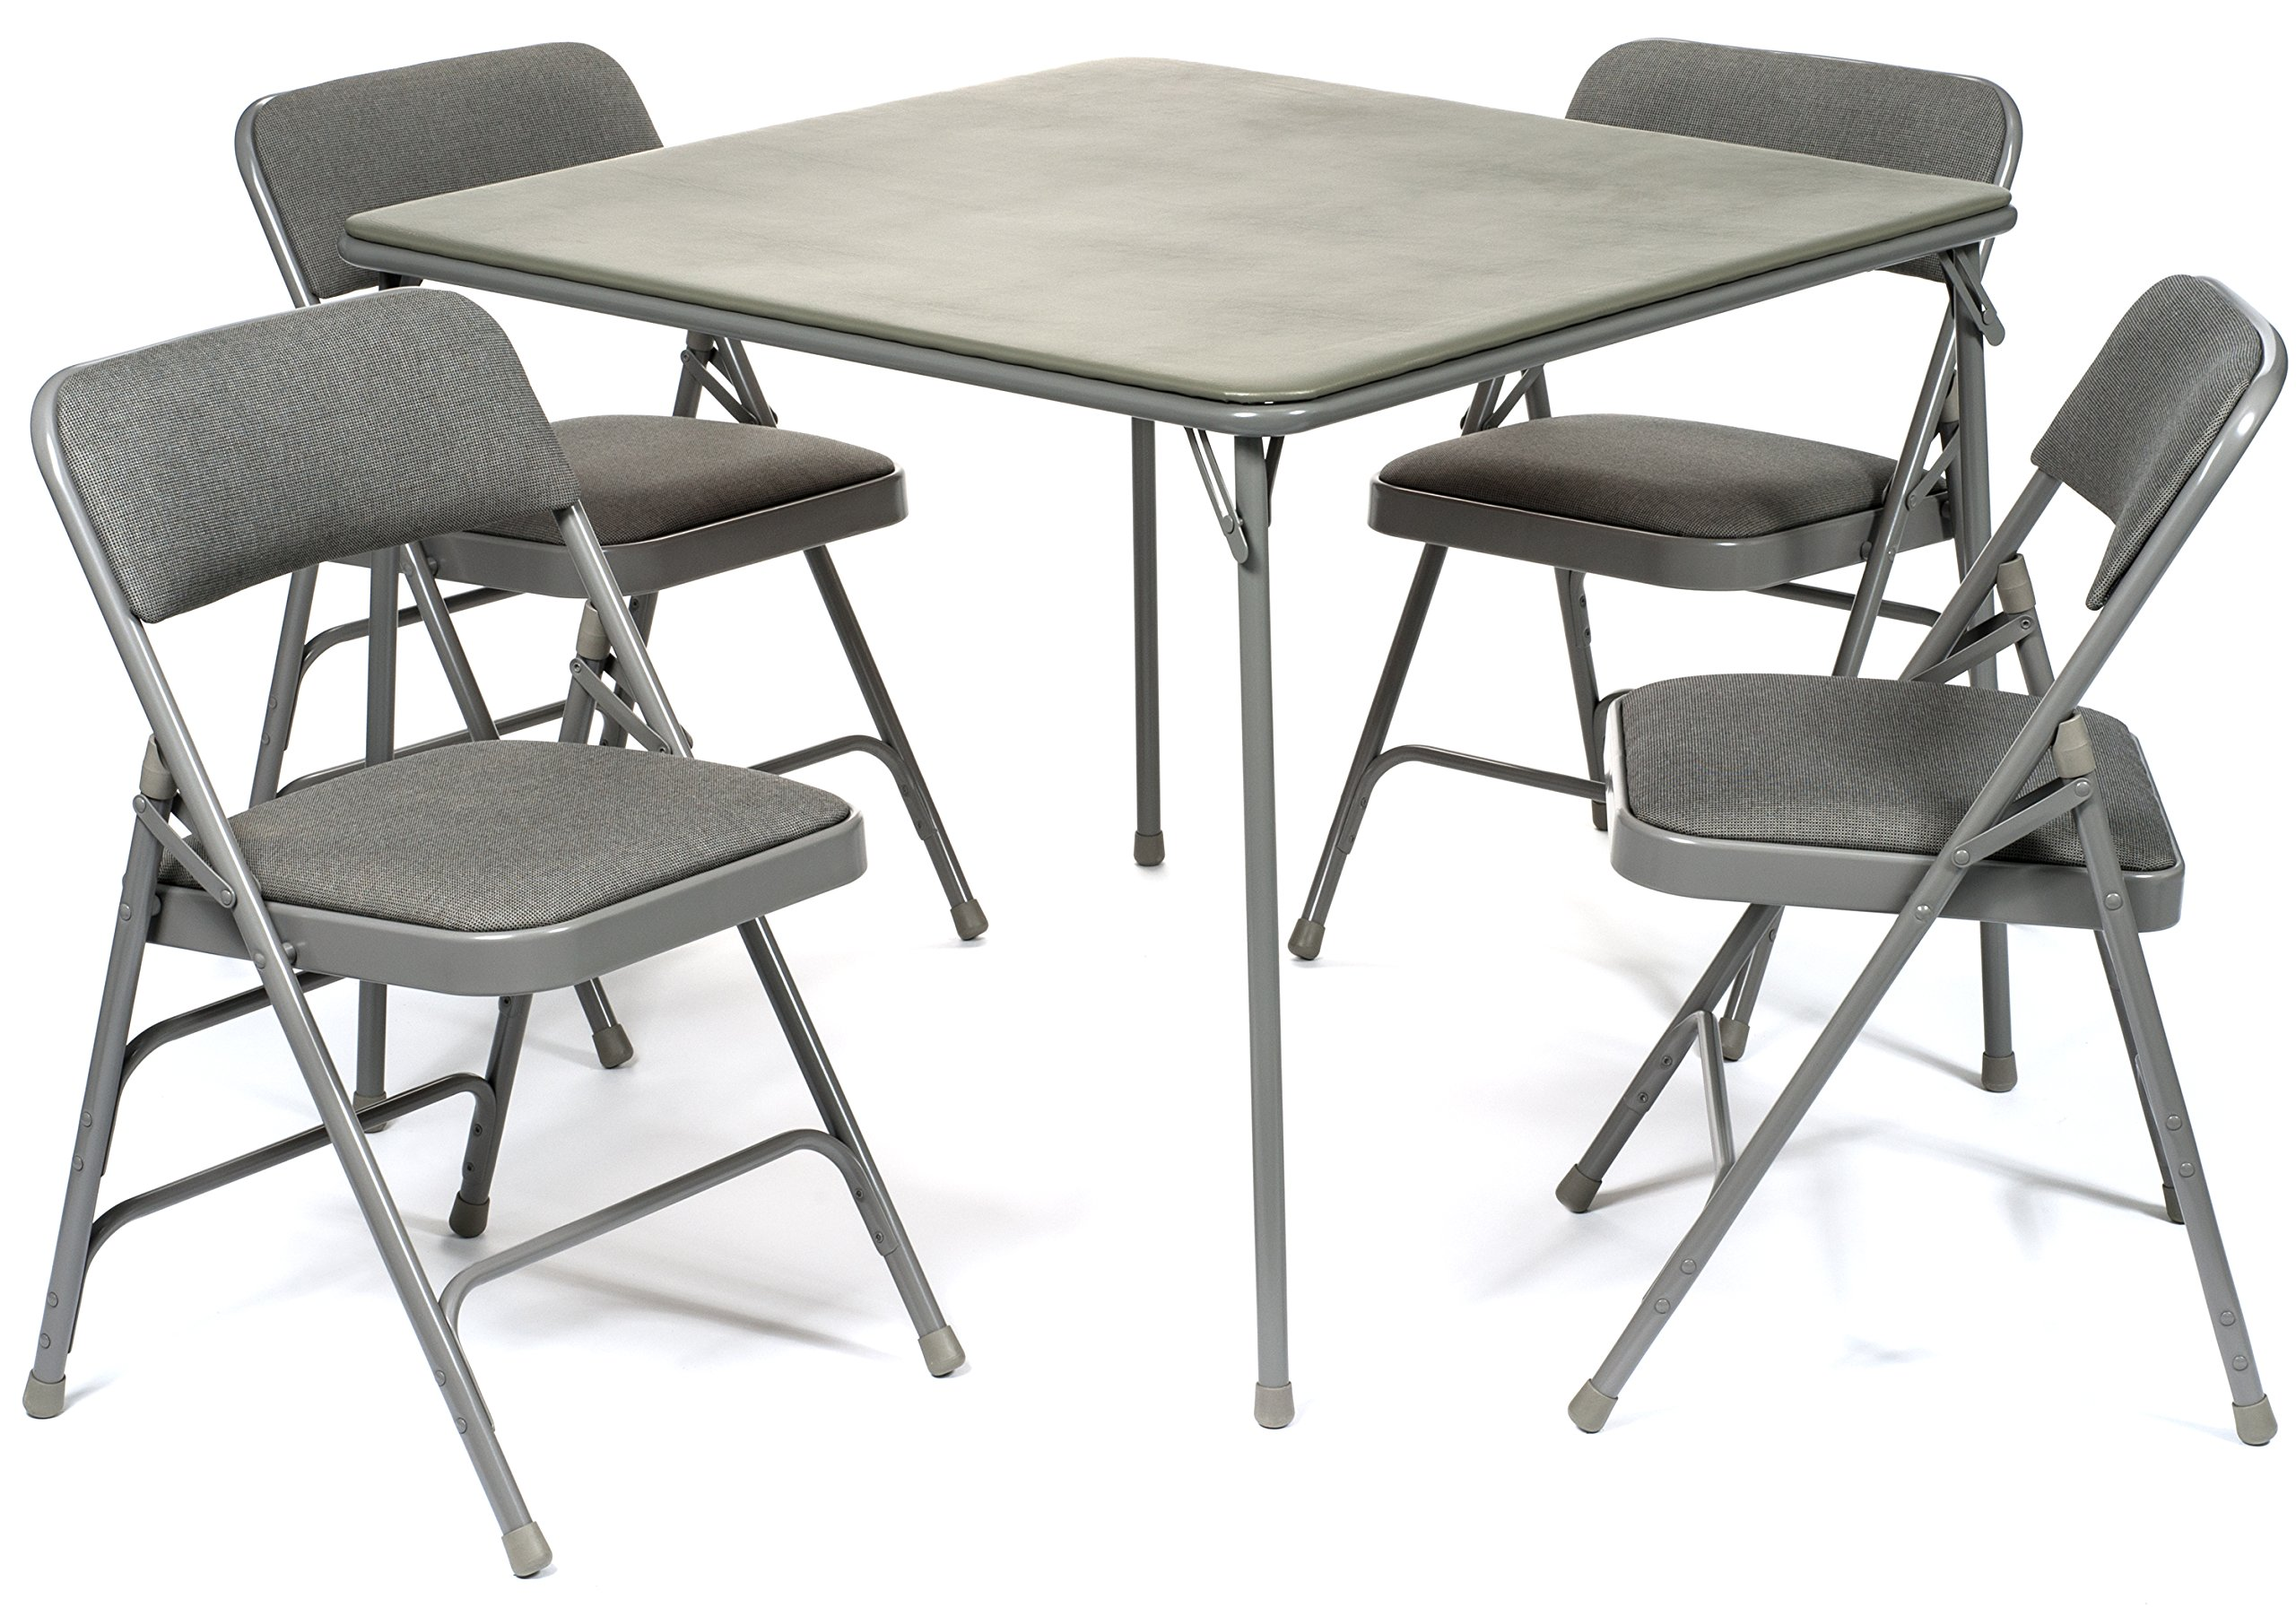 5pc. XL Series Folding Card Table and Triple Braced Fabric Padded Chair Set, Commercial Quality, Grey